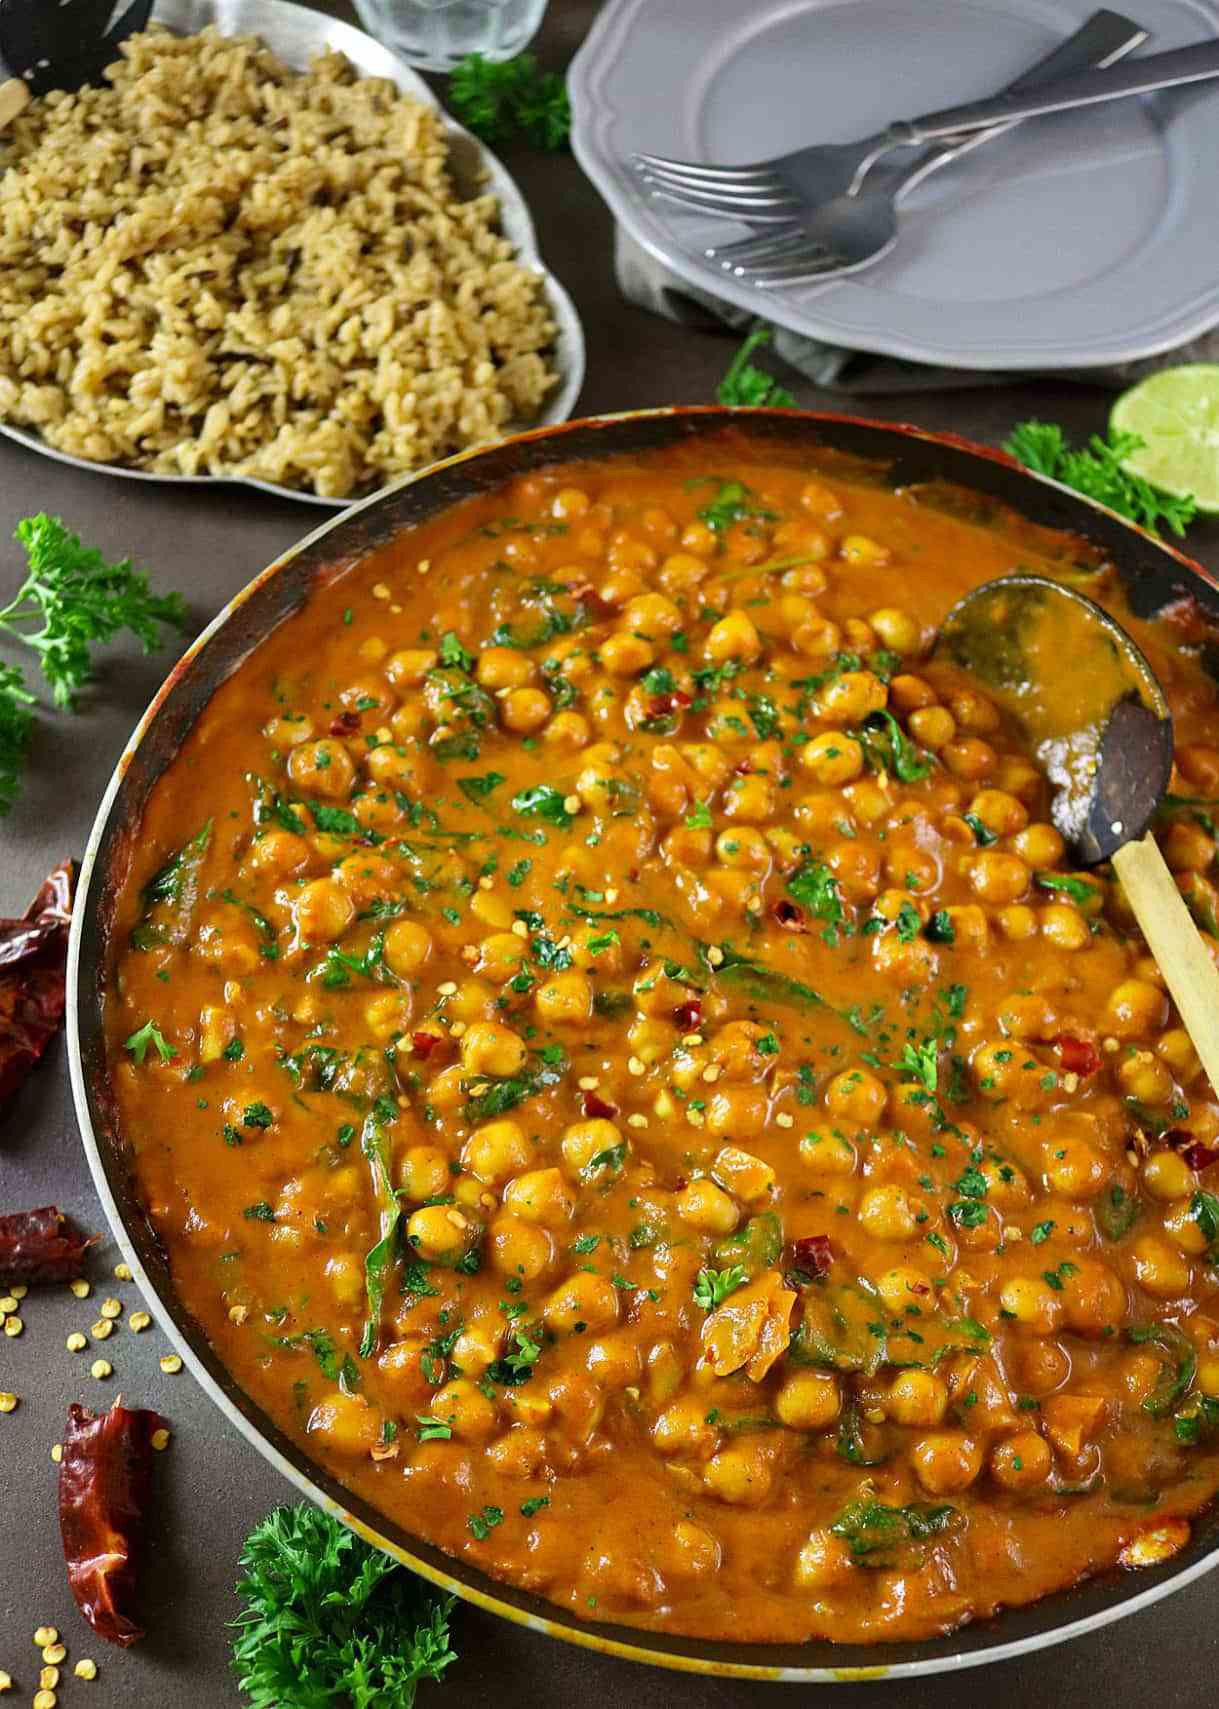 Healthy Chickpea Recipes  Easy Chickpea & Spinach Curry Healthy Recipes with a